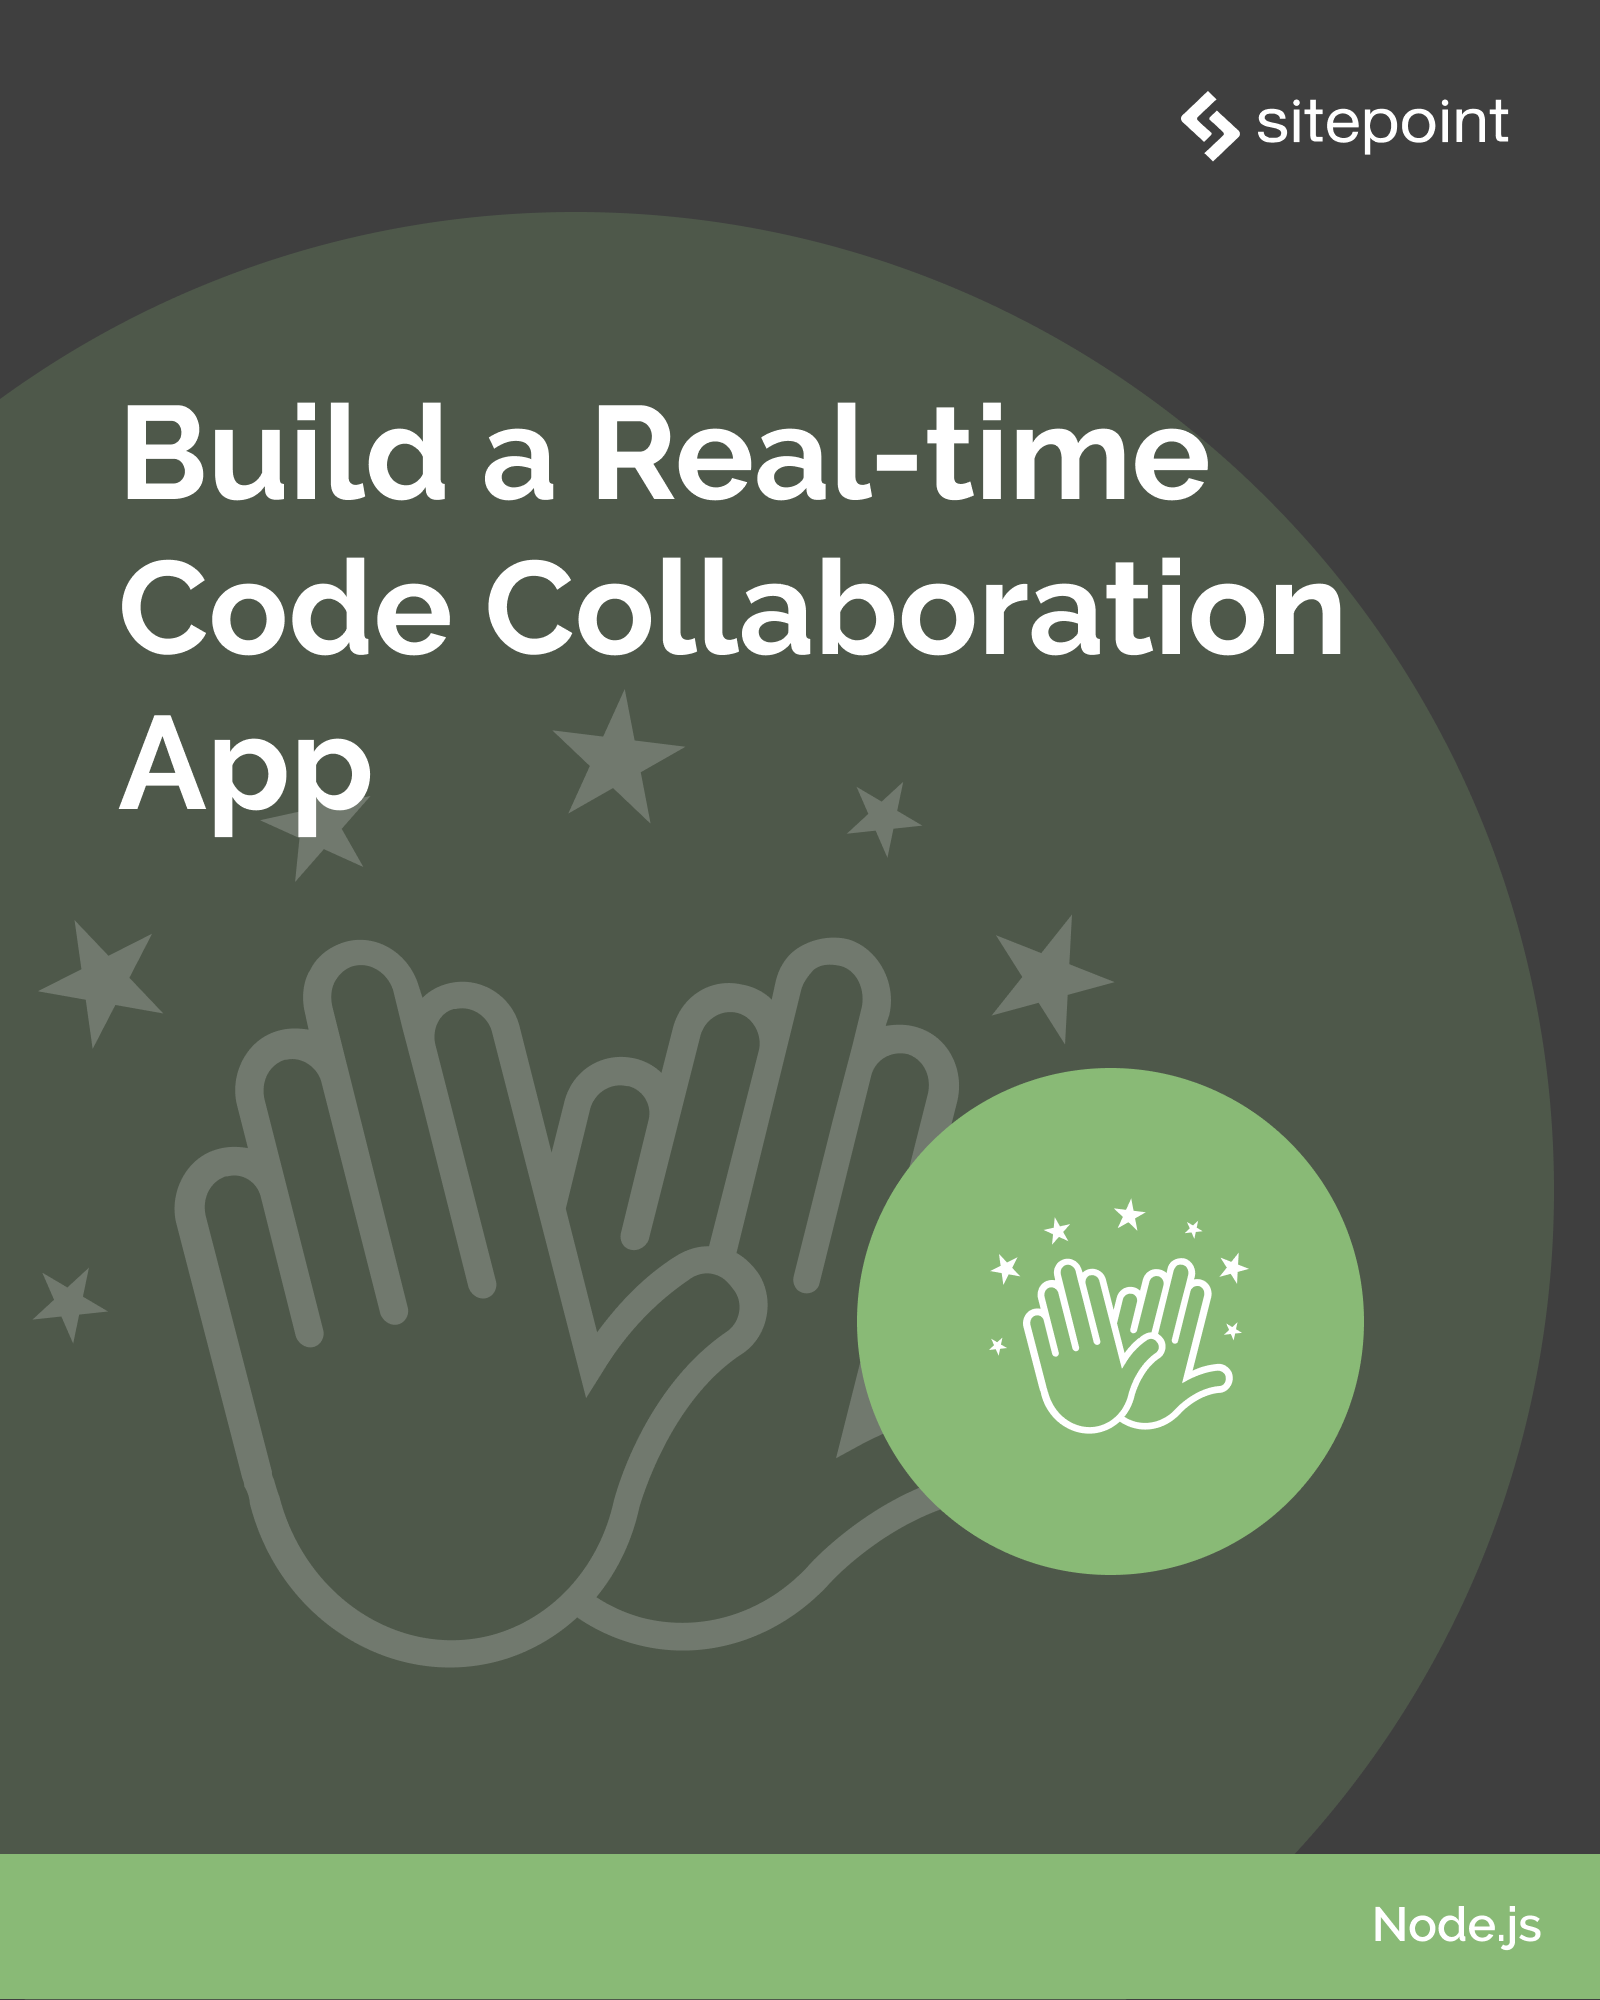 Build a Real-time Code Collaboration App